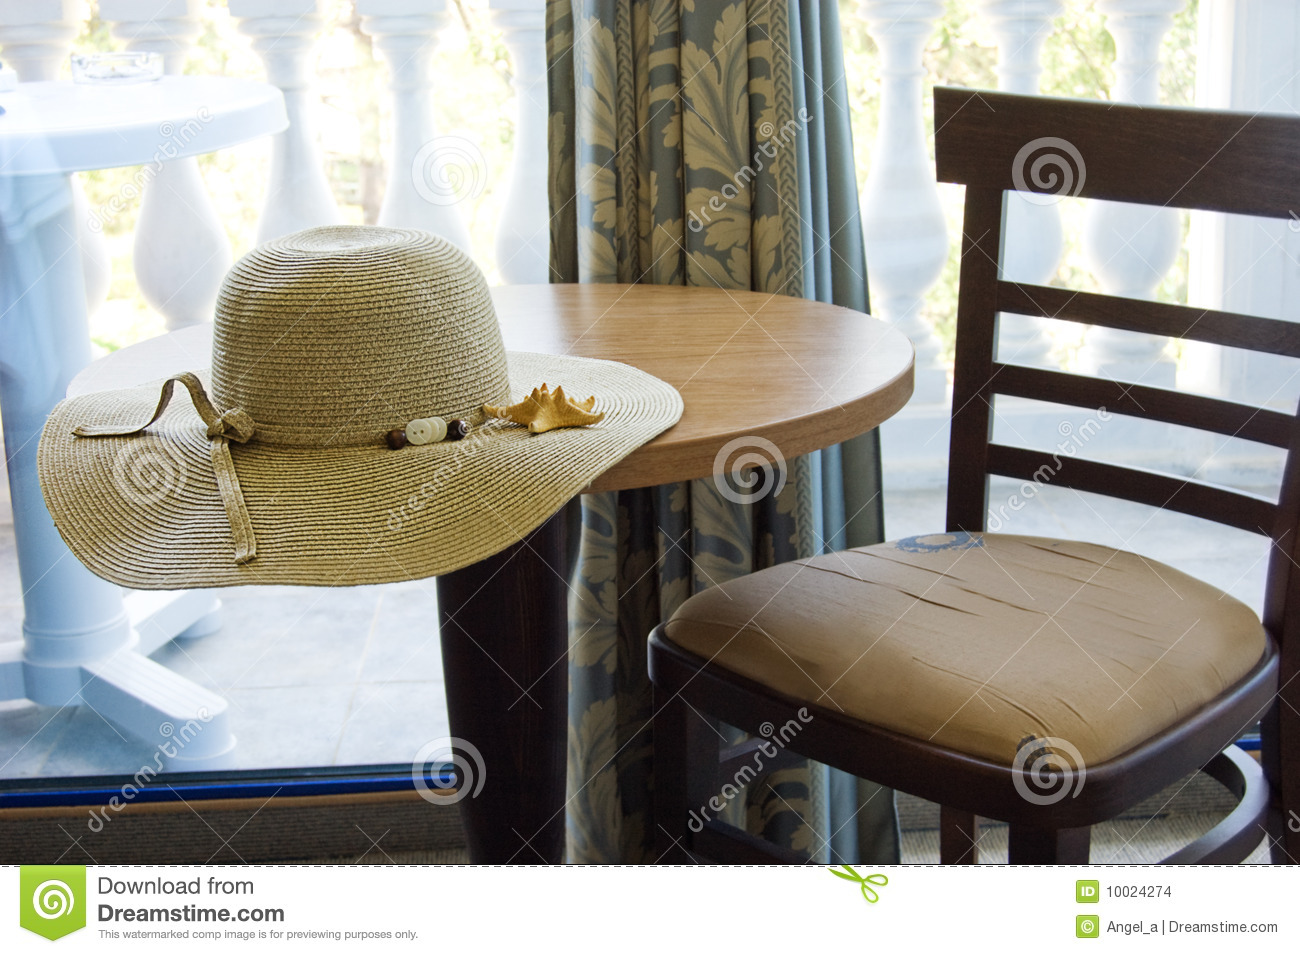 Table and chair in hotel room